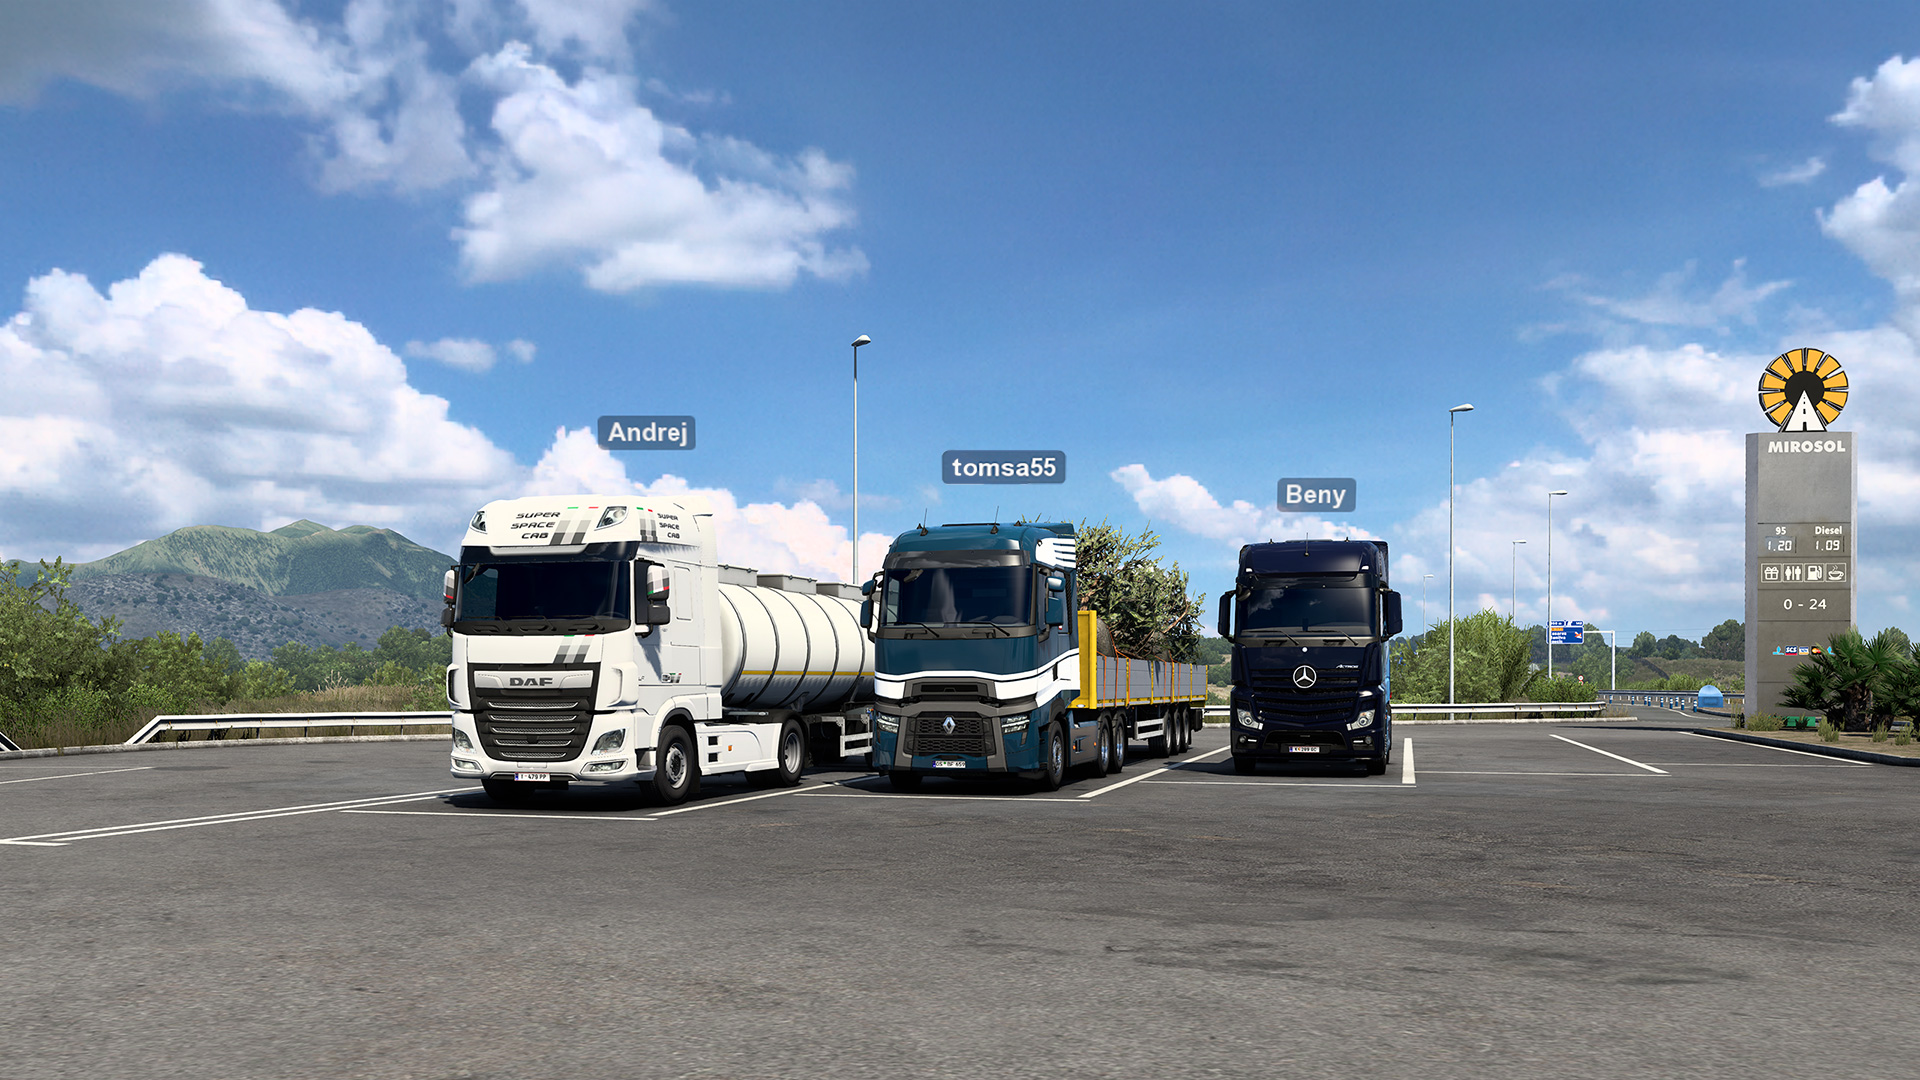 Euro Truck Simulator 2's official multiplayer is live in the free 1.41 update